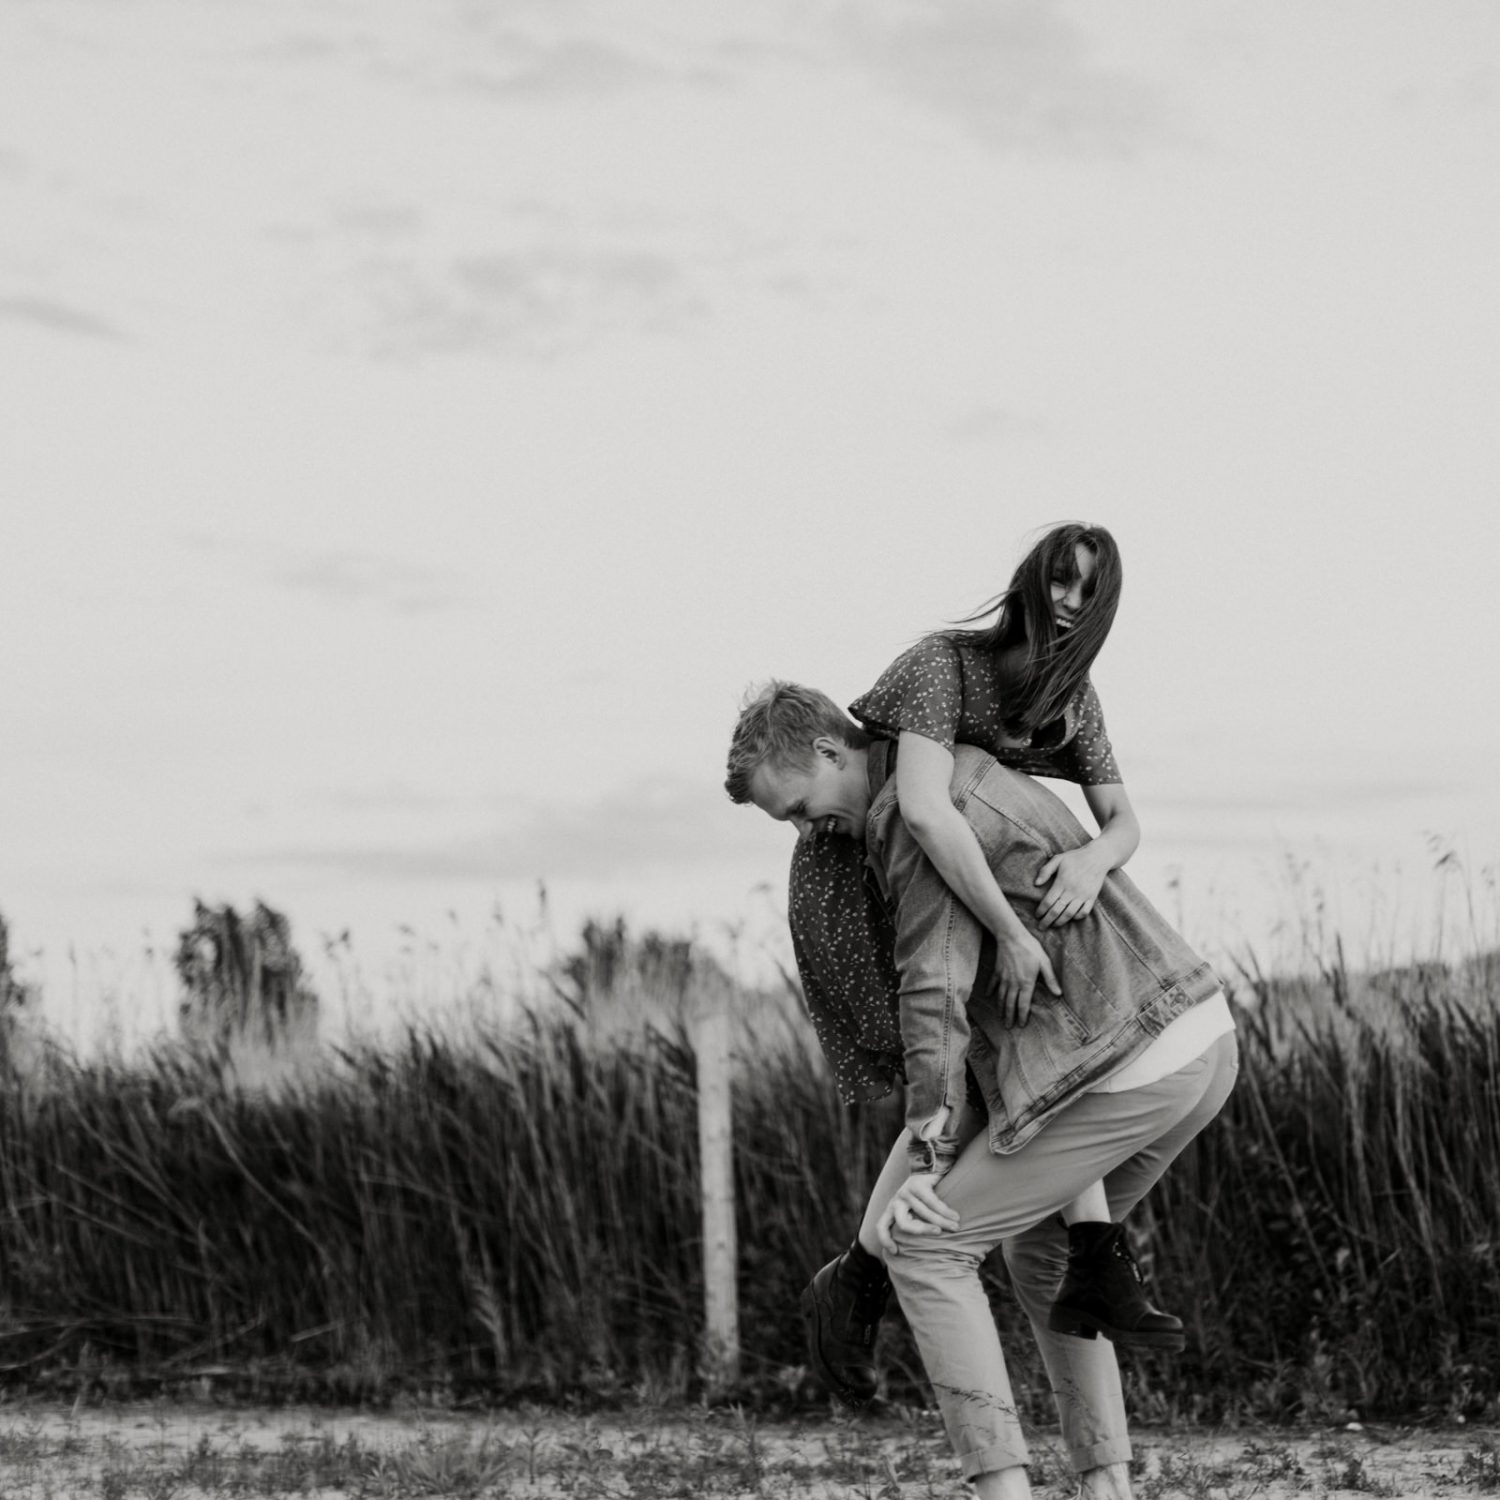 creative-couple-photoshoot-outdoors-by-miks-sels-photography-54